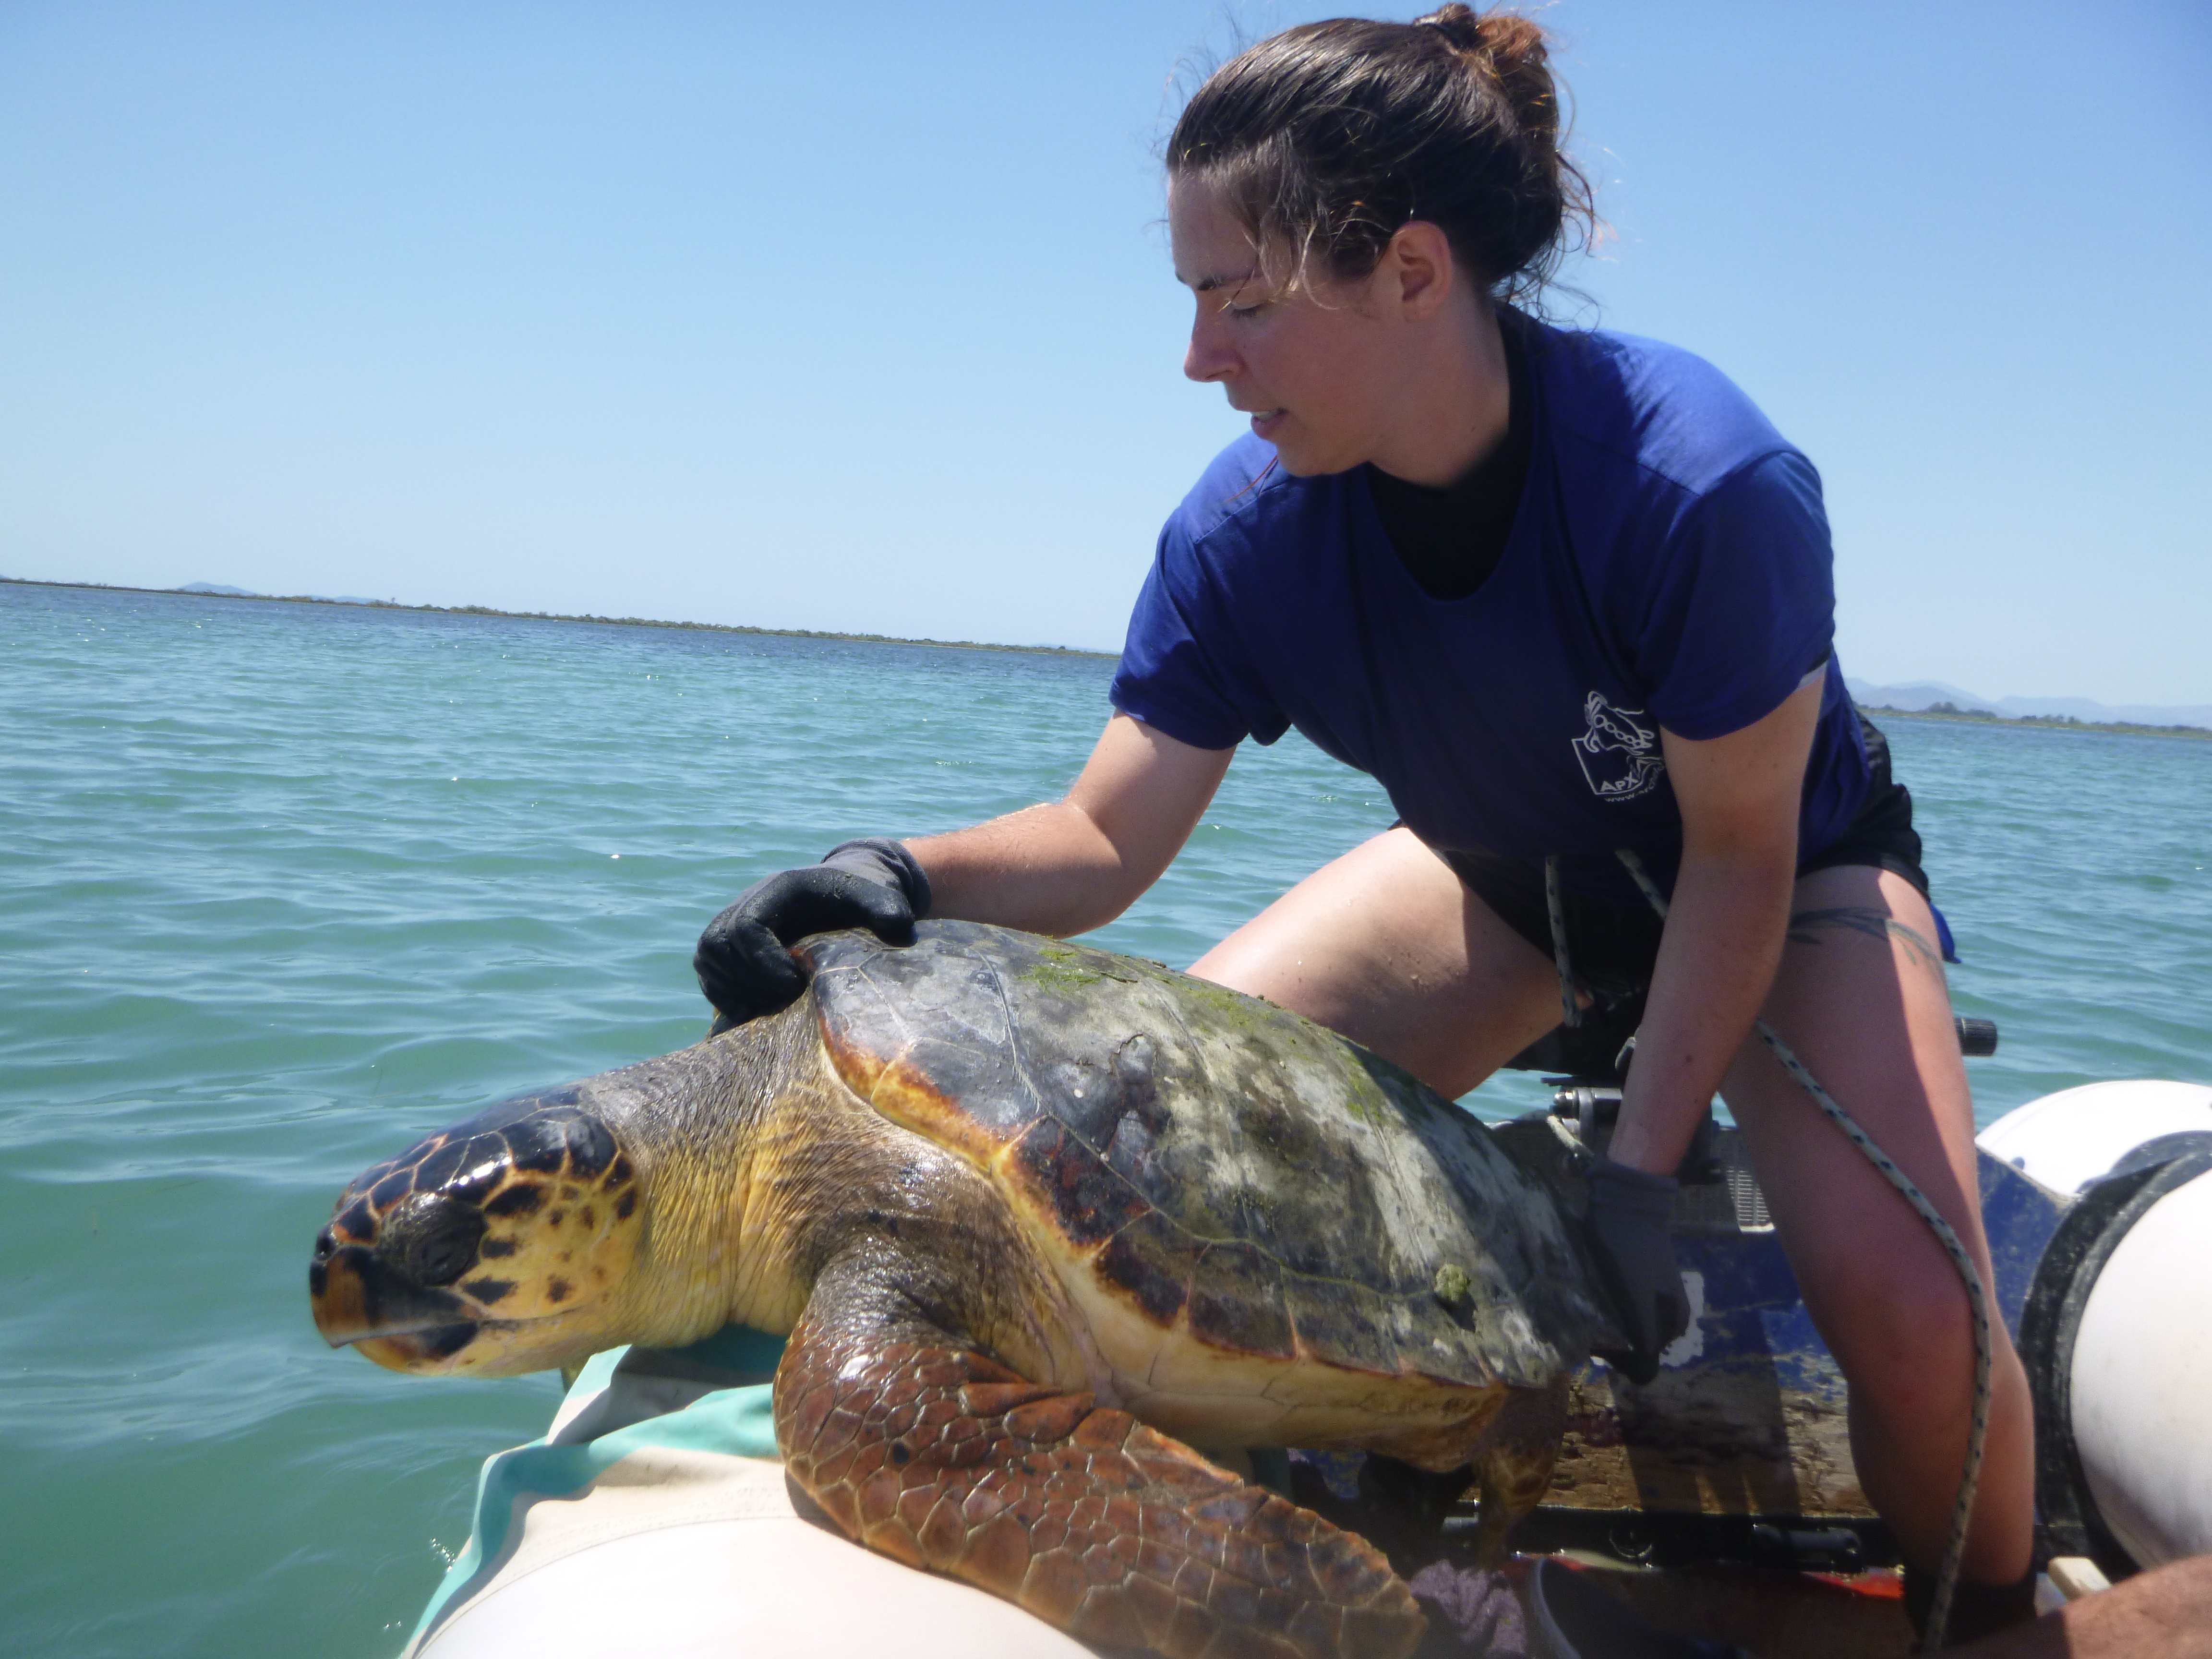 fighting-for-turtles-a-story-of-conservation-from-the-mediterranean1